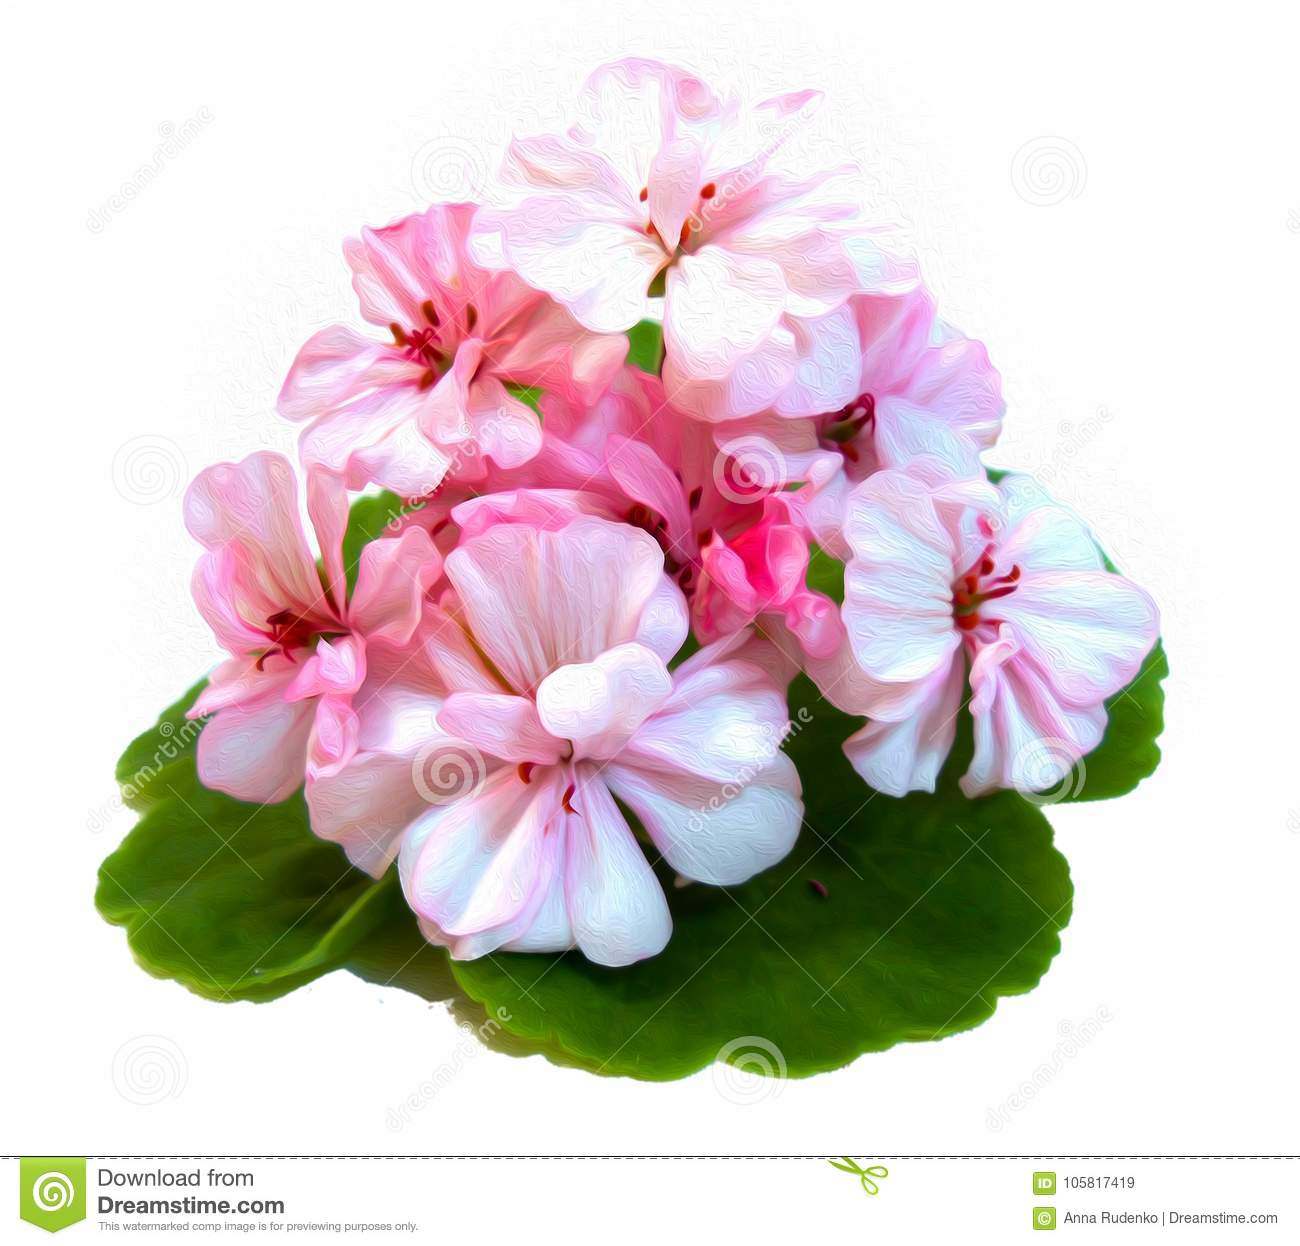 Geranium flowers in the shape of roses fresh on the green leaf,